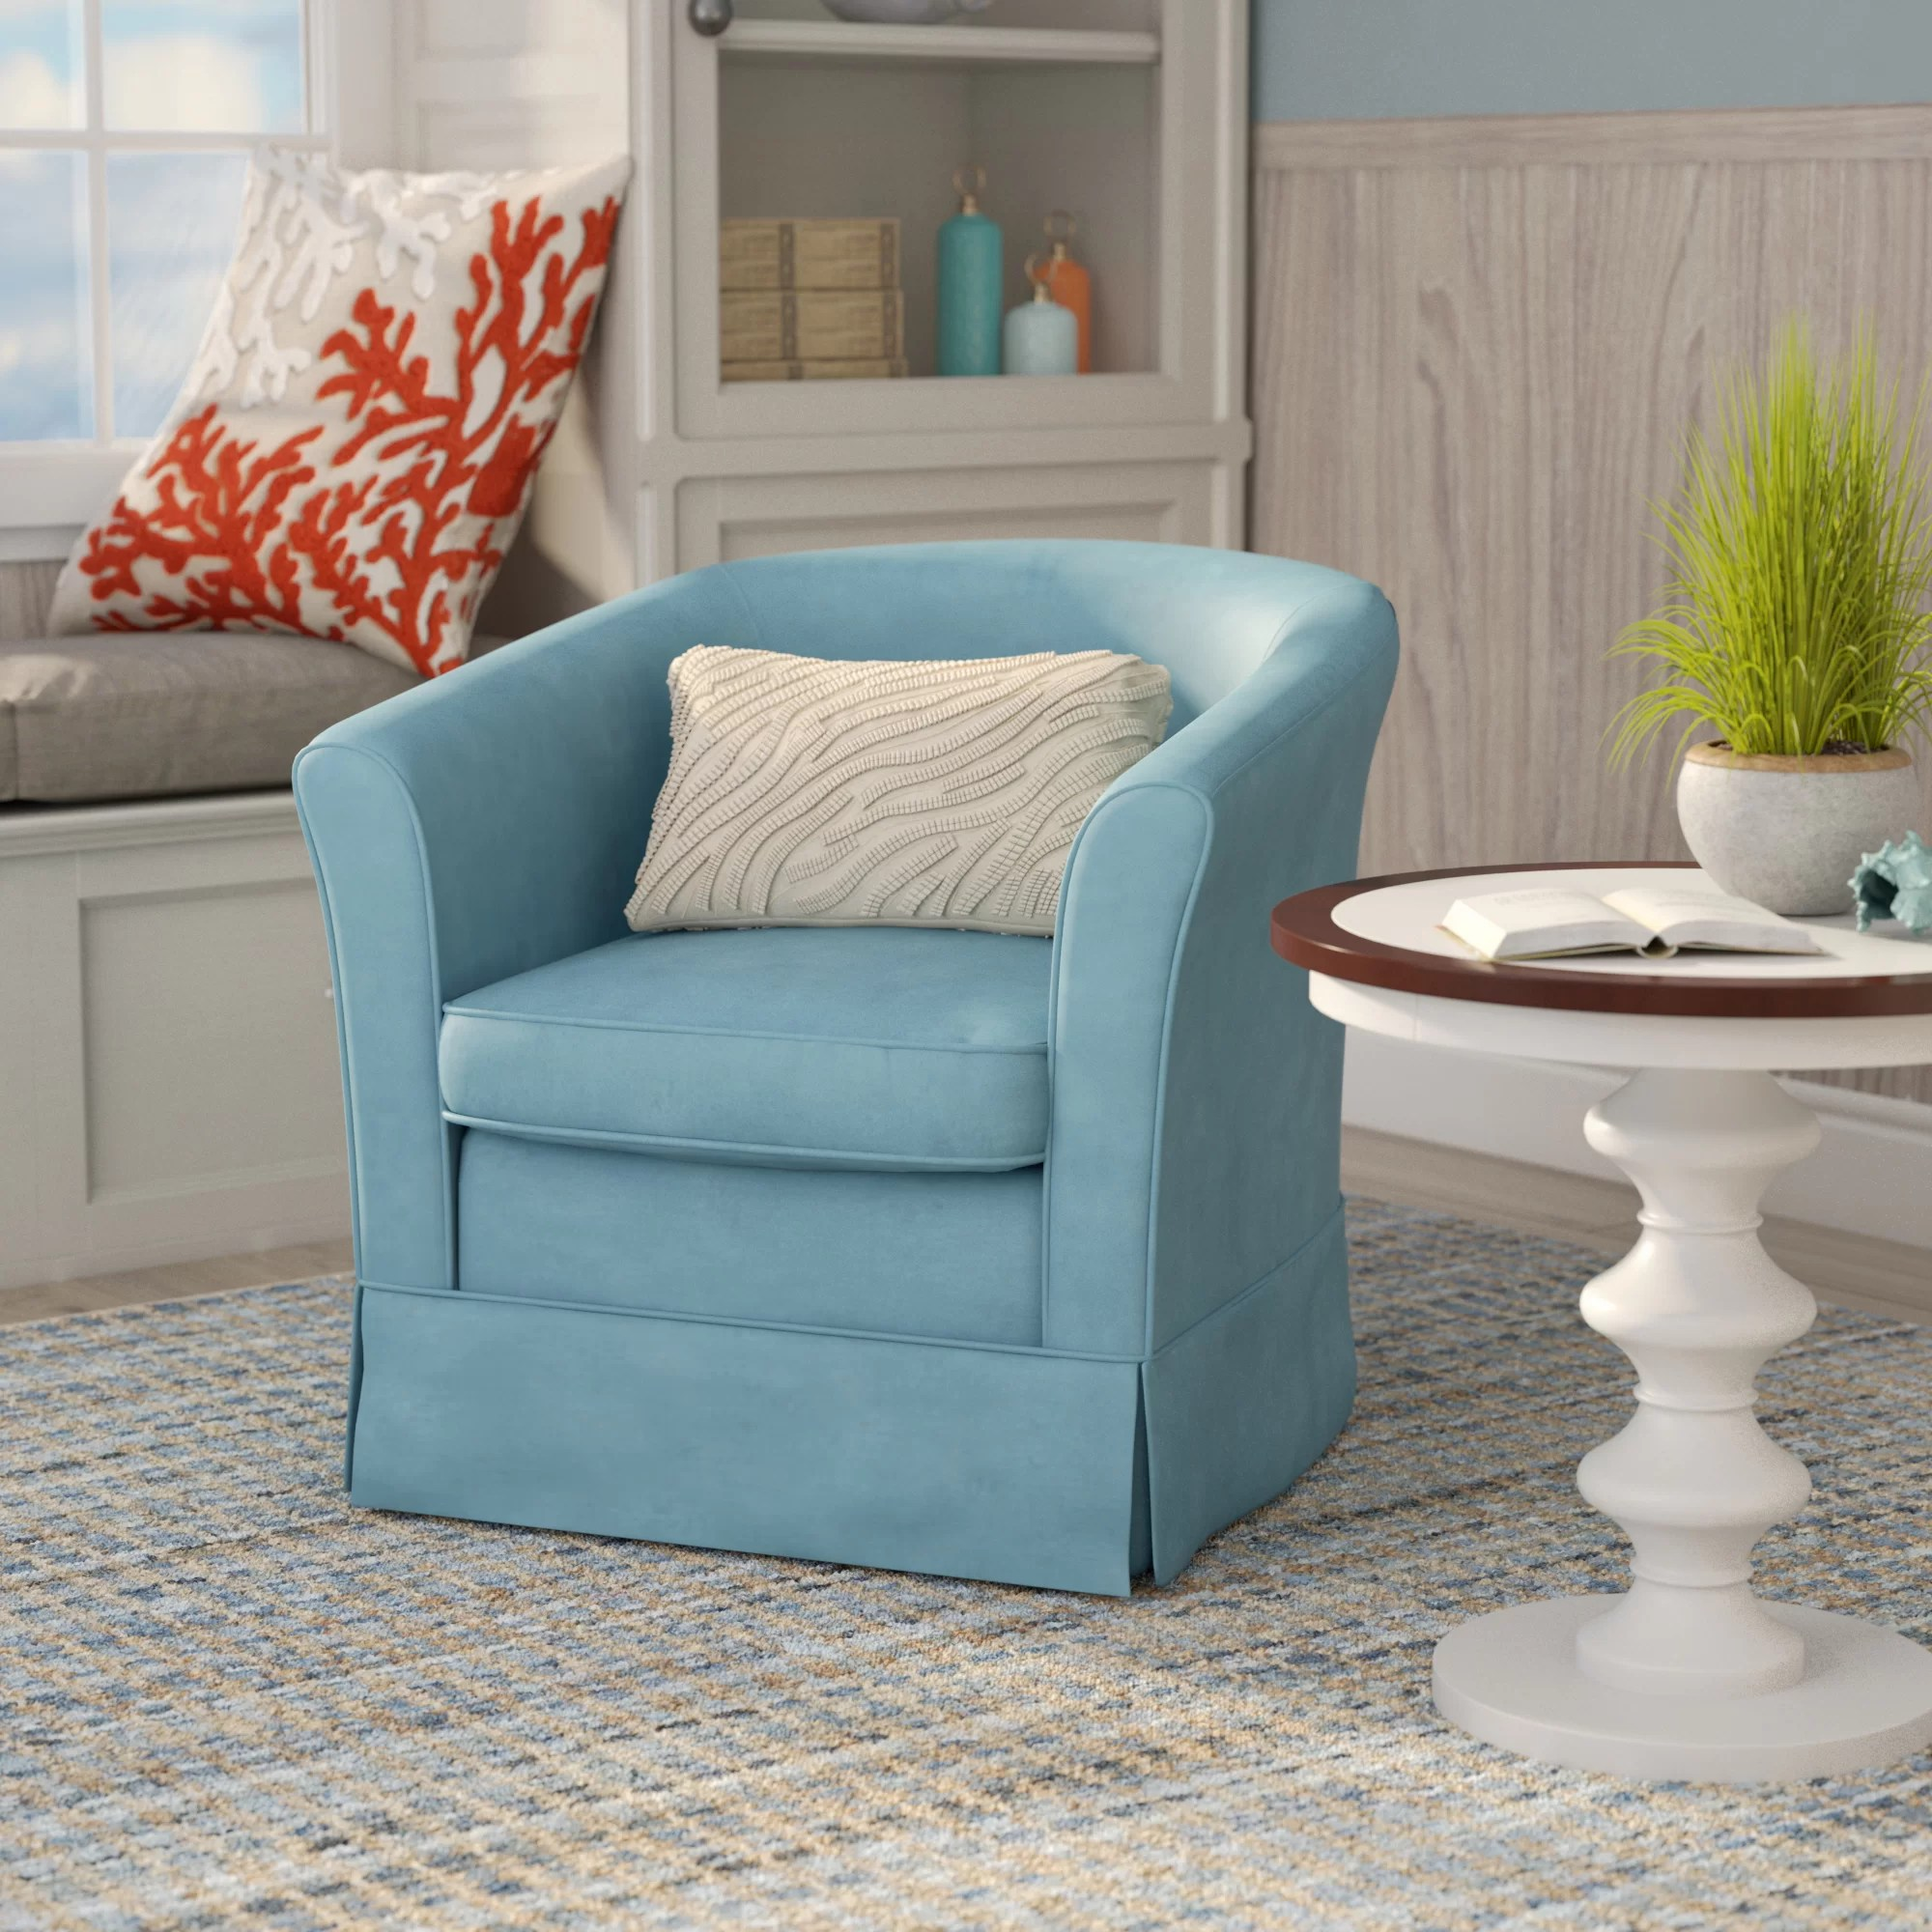 Blue Swivel Chair Laurel Foundry Modern Farmhouse Sevan Swivel Barrel Chair